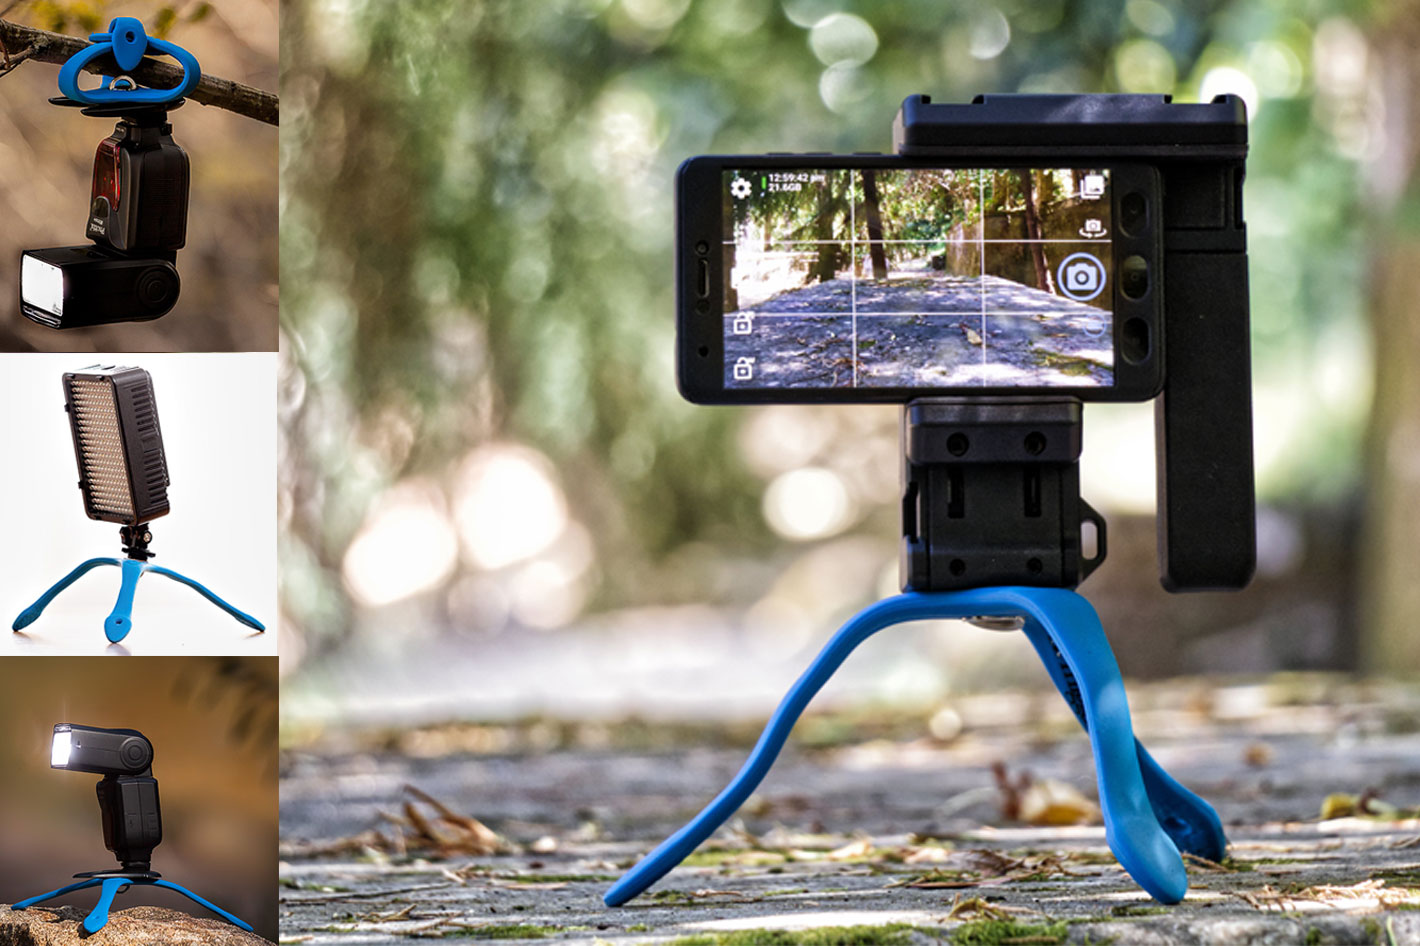 Review: two years using a Shoulderpod G2 smartphone grip